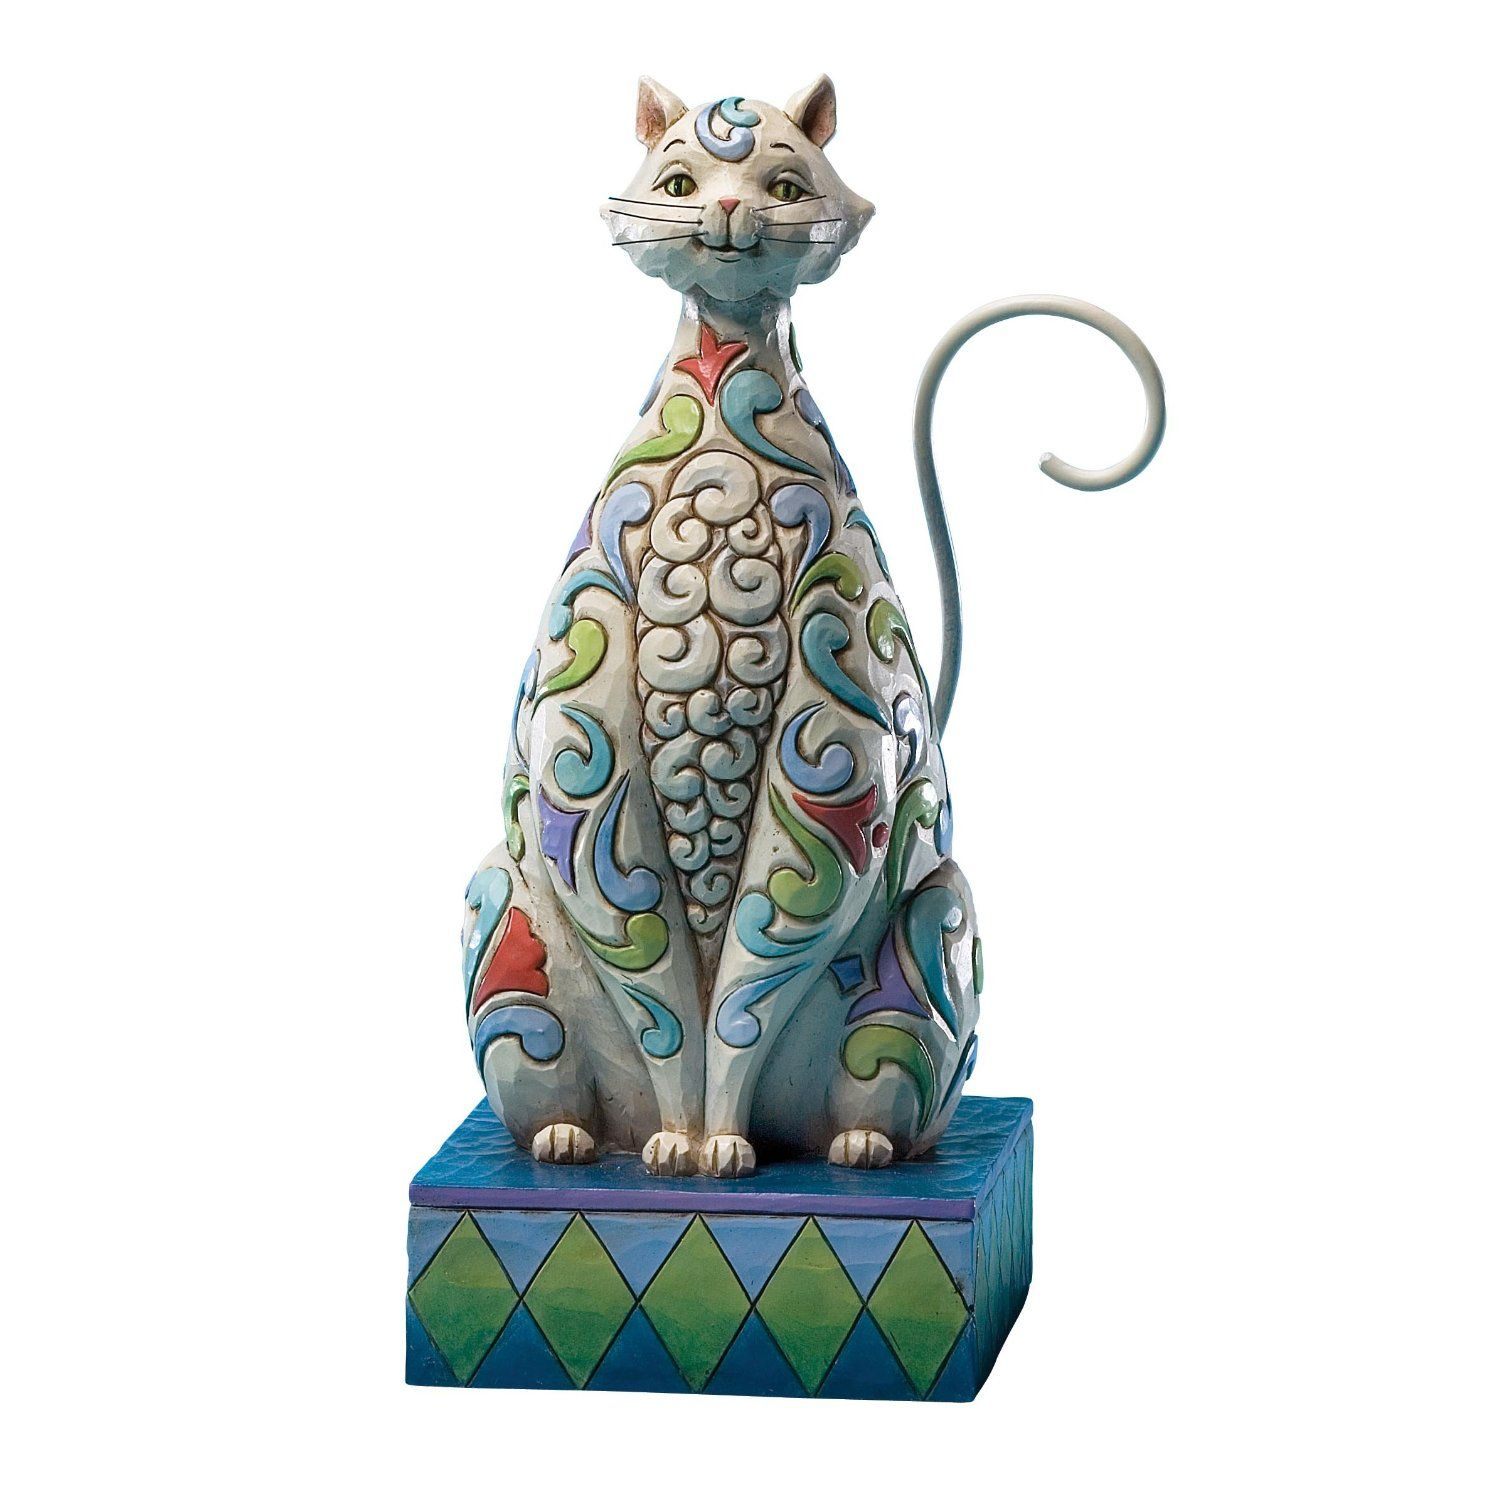 Jim Shore - Cat with Tulip Pattern Figurine